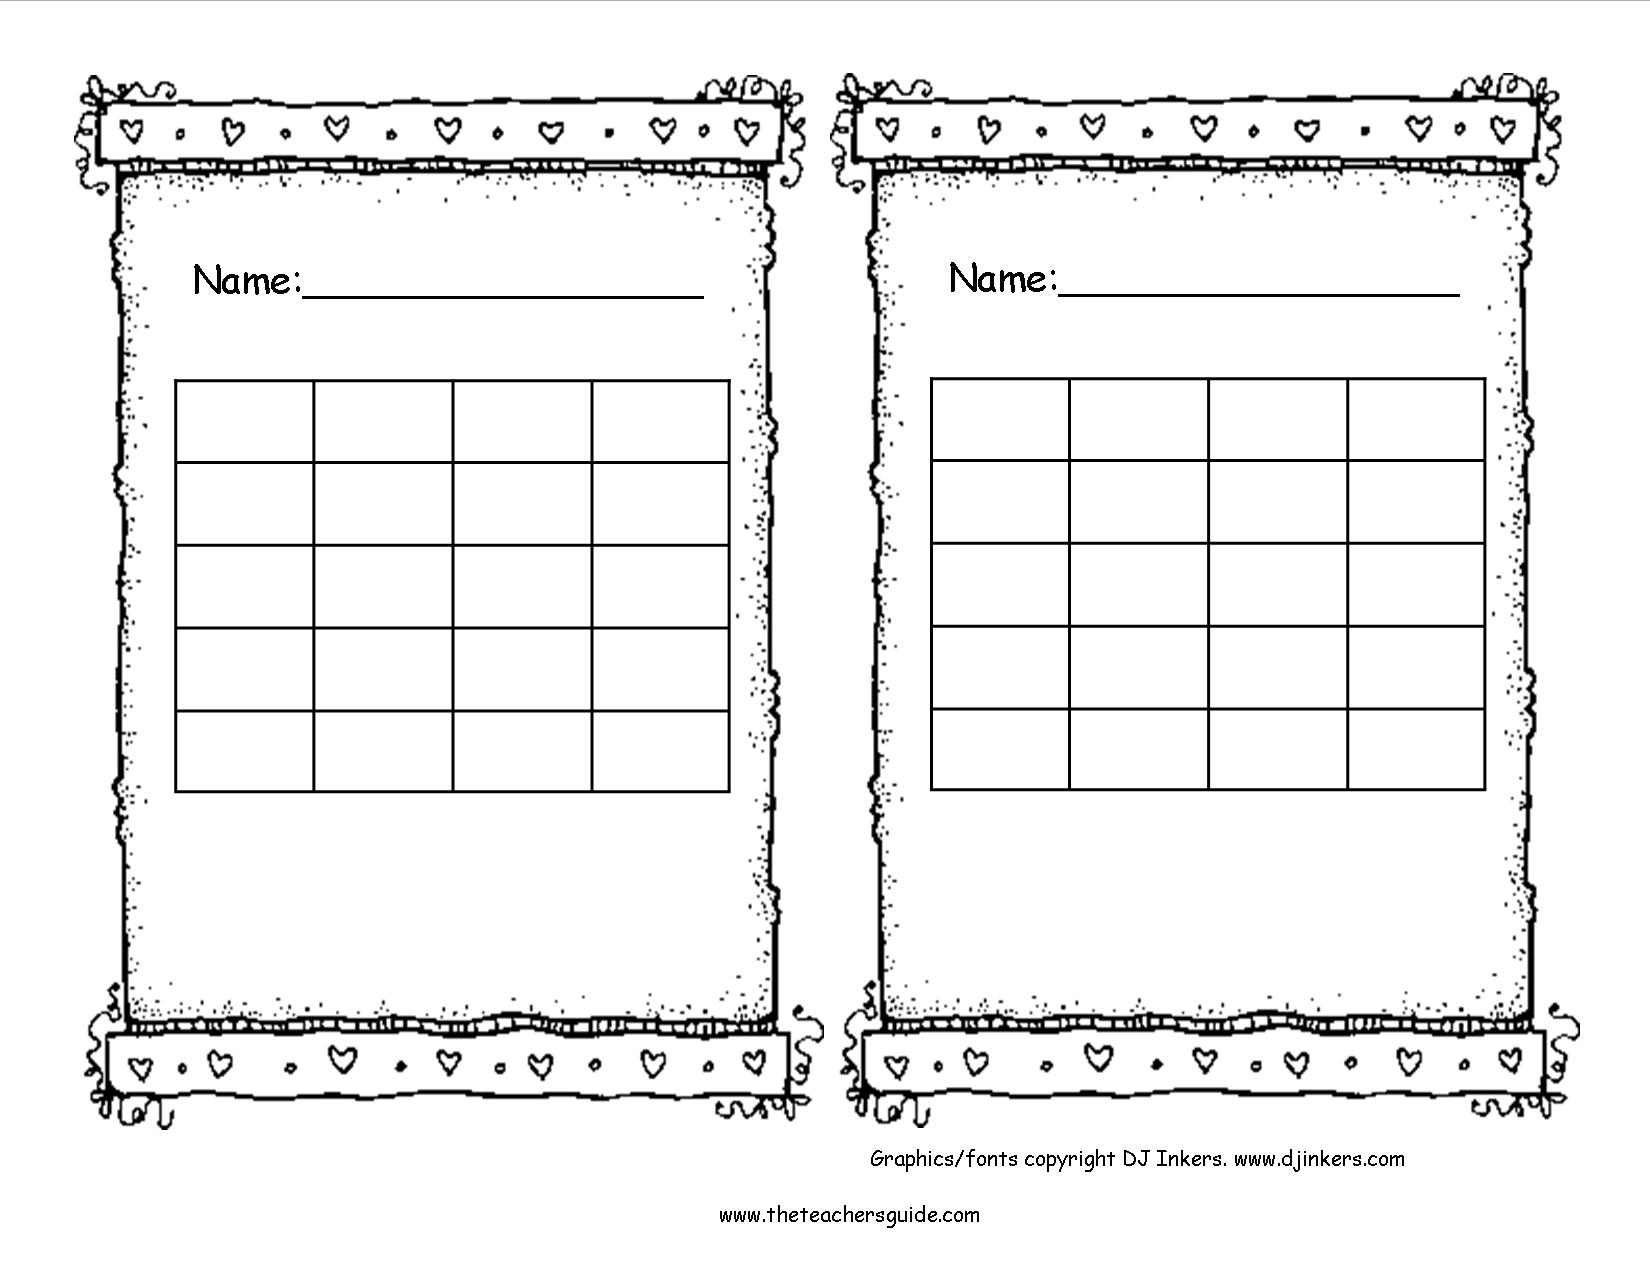 Free Printable Reward And Incentive Charts - Free Printable Incentive Charts For School